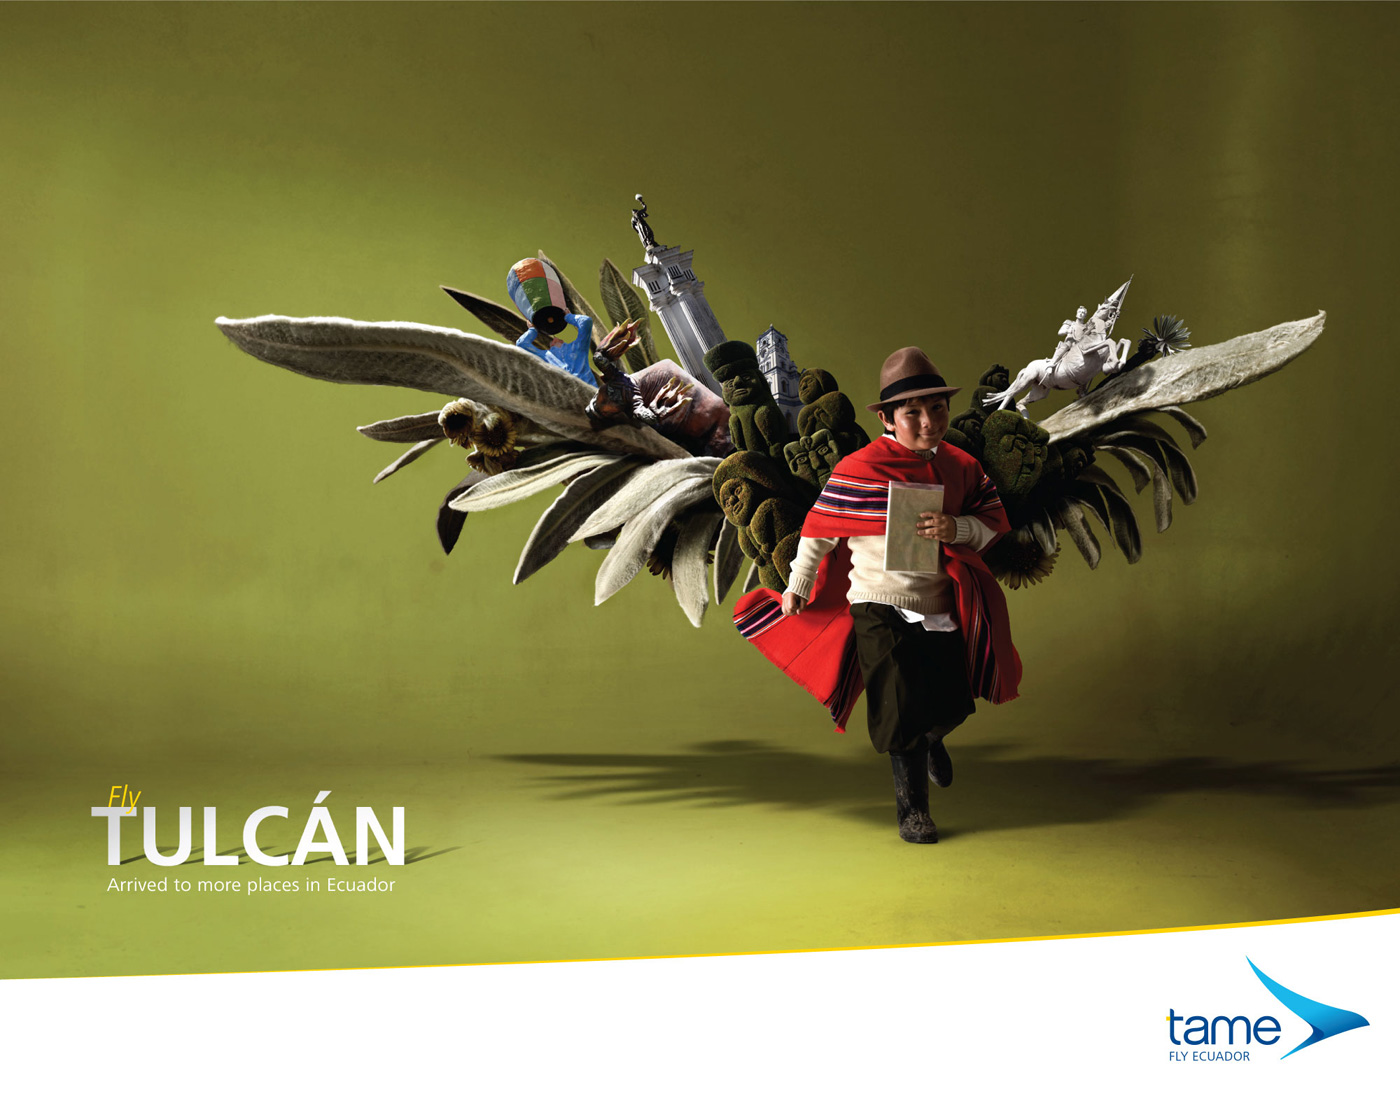 Fly TULCÁN Arrived to more places in Ecuador